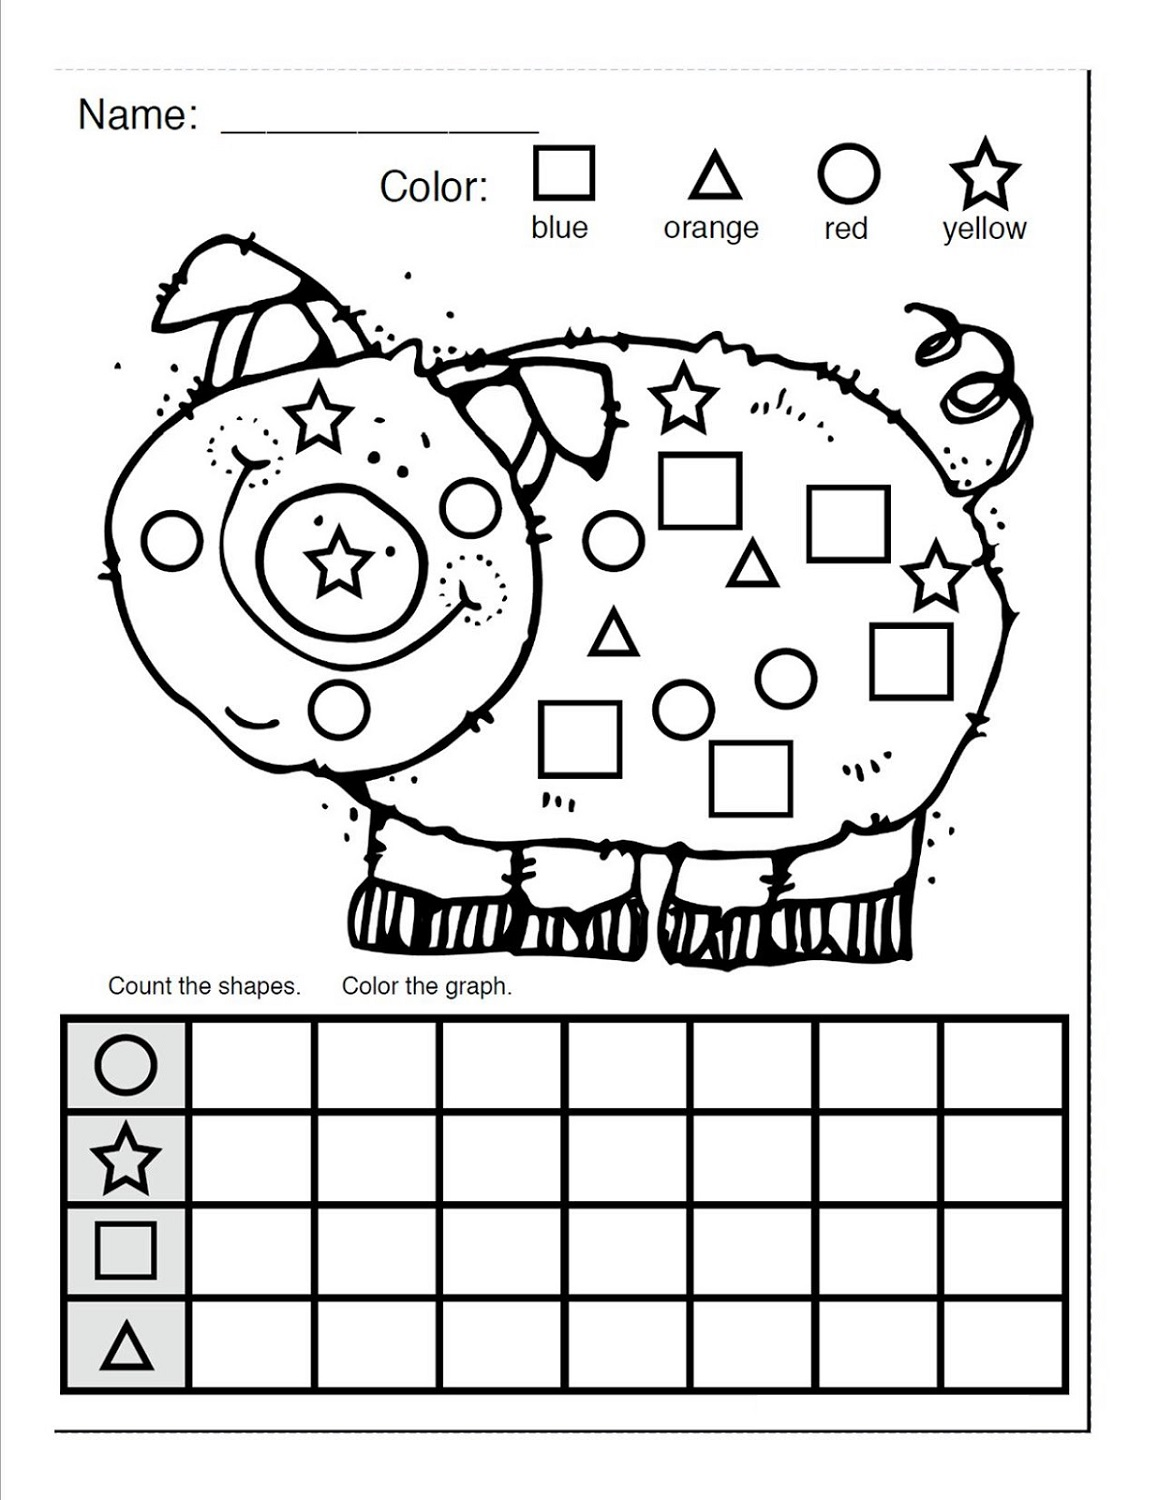 shapes-worksheets-for-kids-piggy